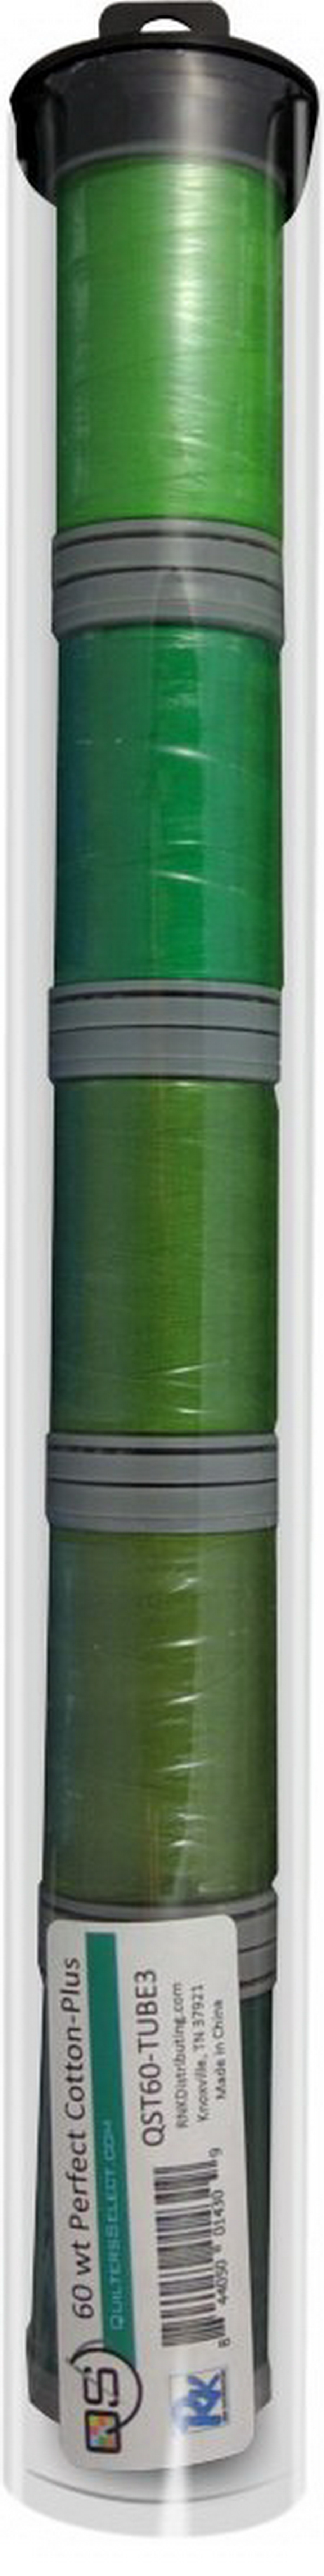 Quilters Select Perfect Cotton Plus Thread 60 Weight 400m Spools - Bundle Tube 3